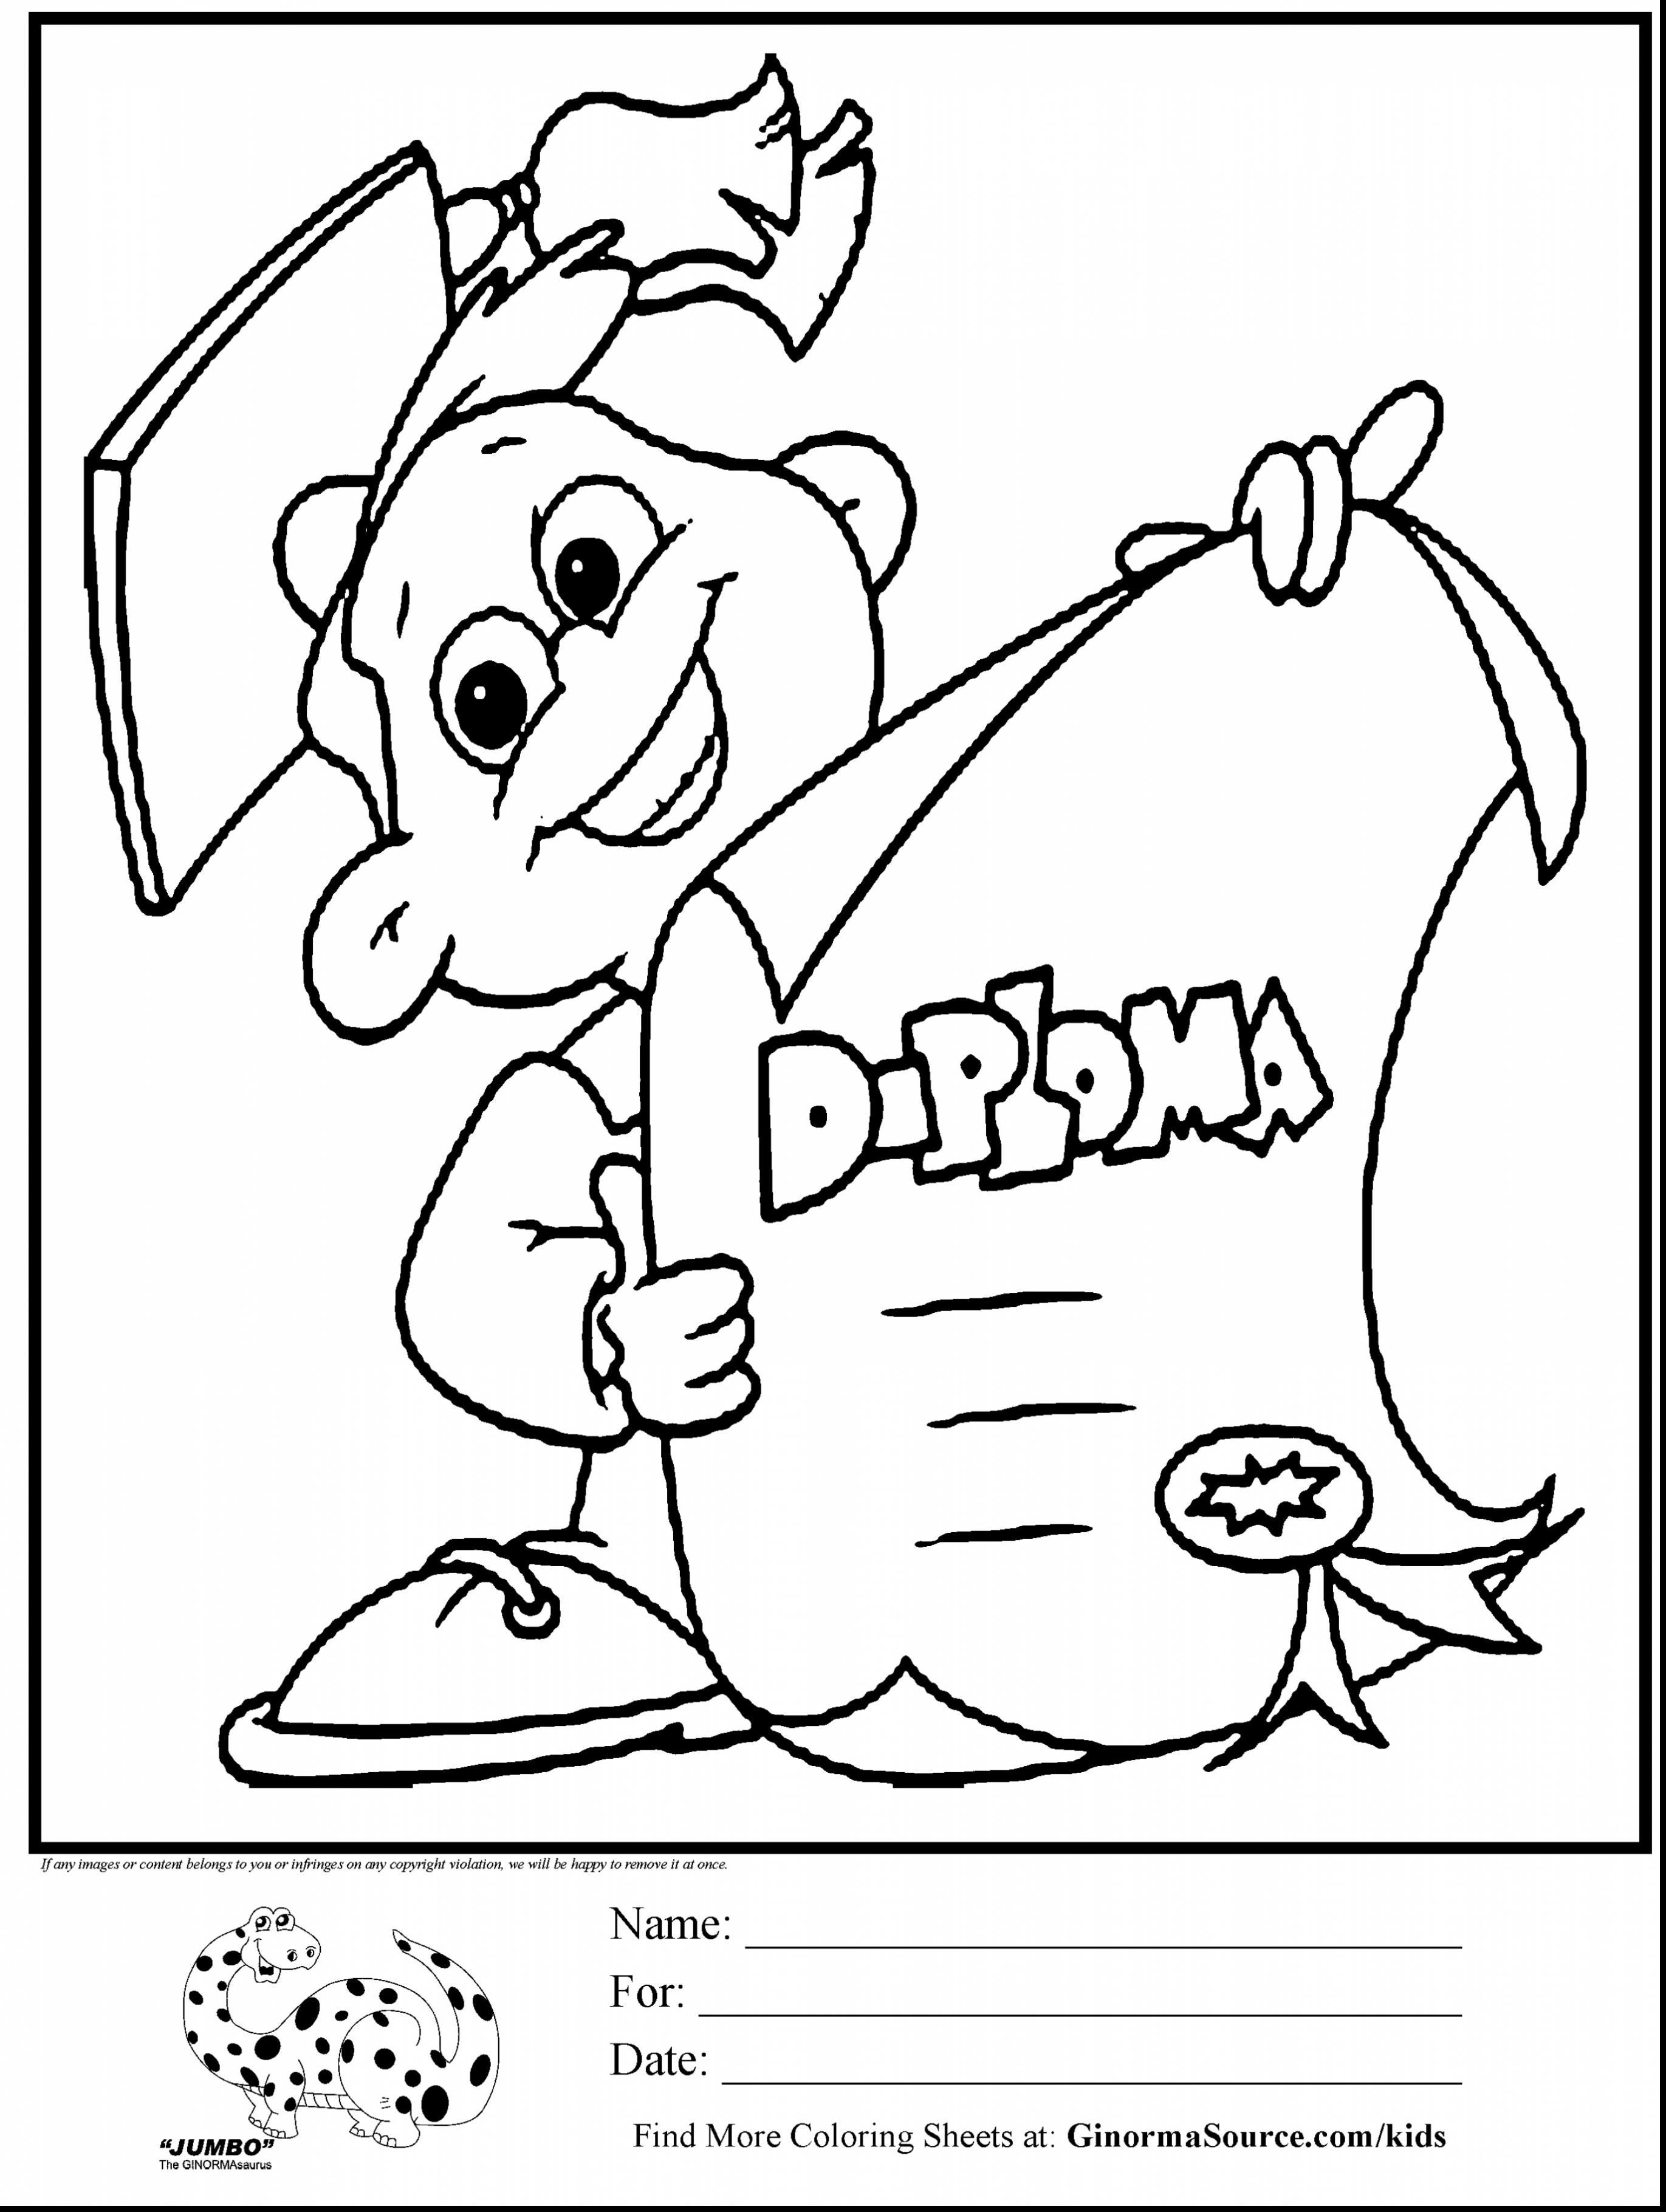 Coloring College Graduation Coloring Page For Preschool